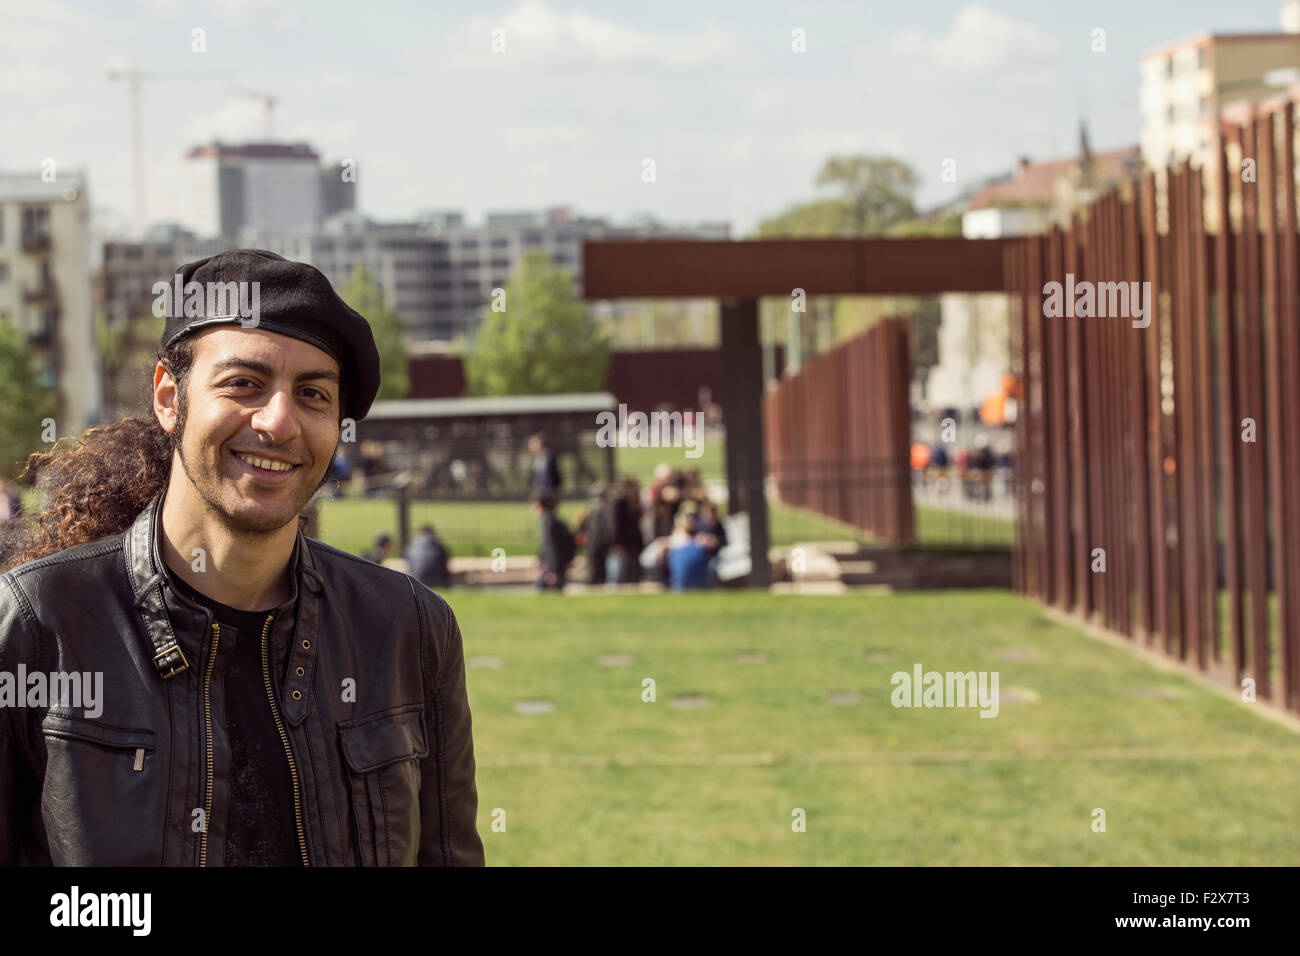 Portrait of smiling long-haired man  wearing beret and leather jacket - Stock Image